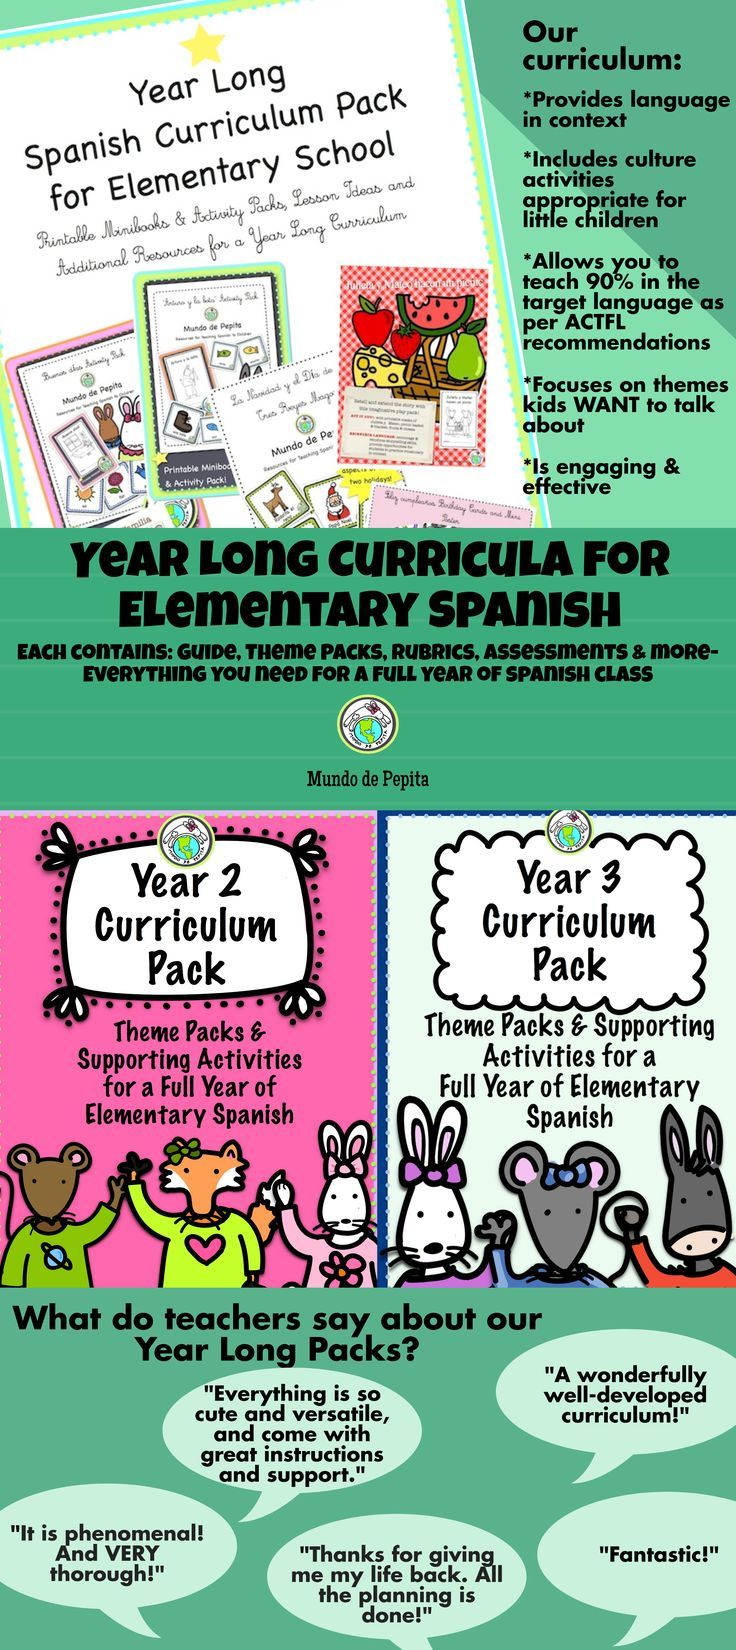 Year Long Spanish Curriculum Pack for Elementary School Printable